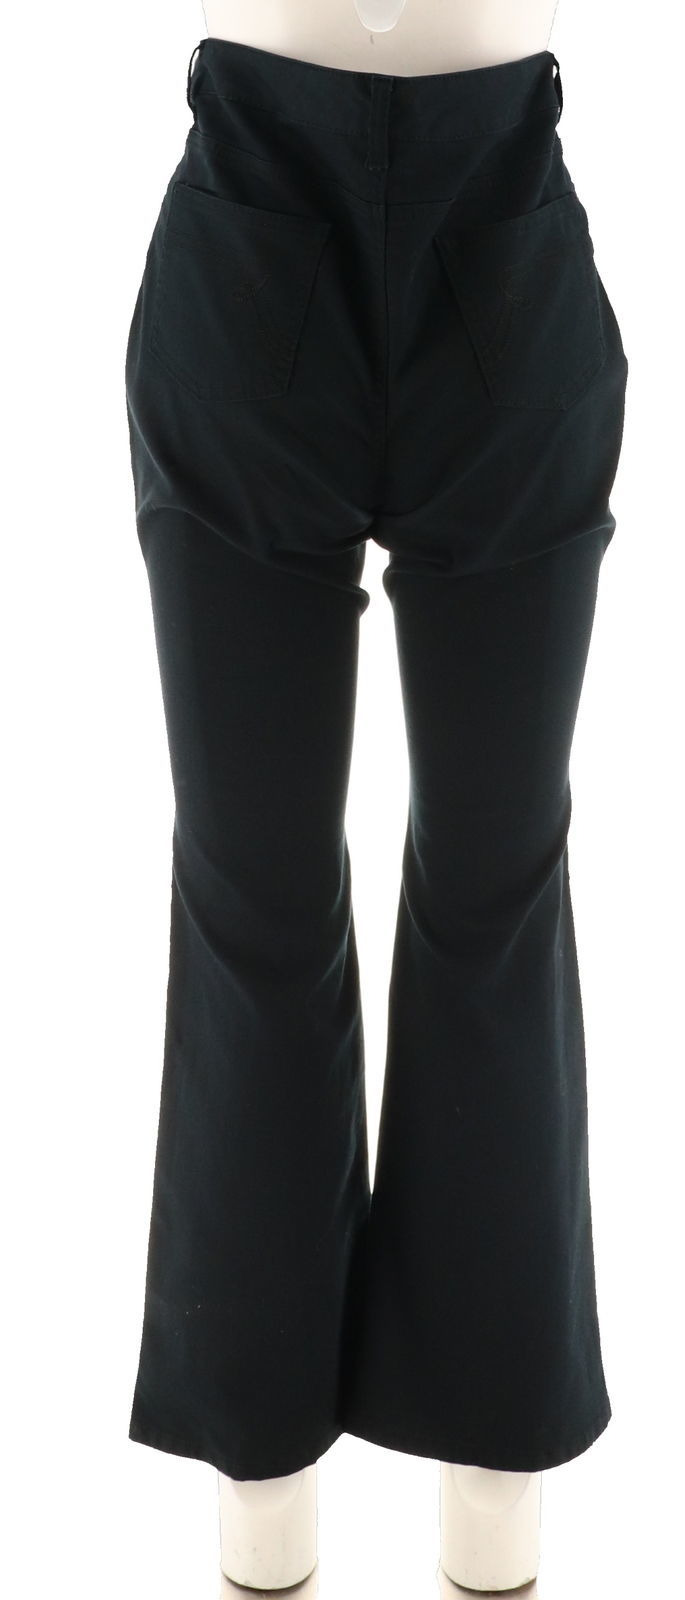 Women with Control My Wonder Denim Twill Boot Cut Jeans Black 2 NEW A294271 image 3